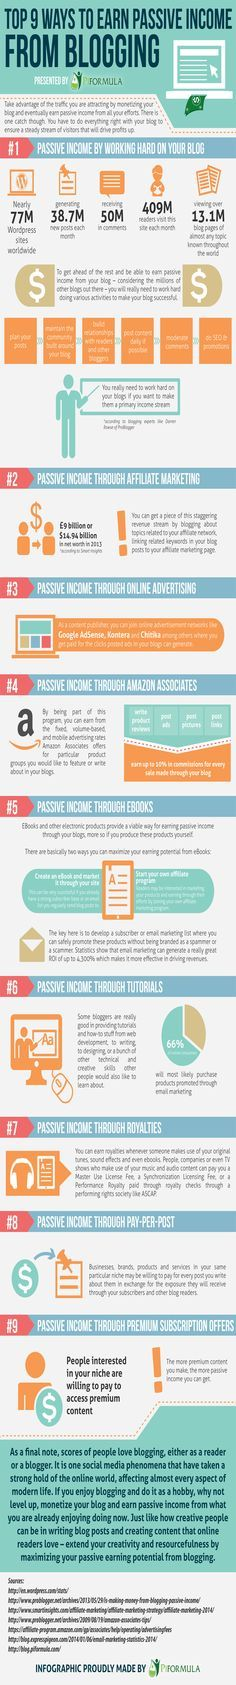 Top 9 Ways to Earn Passive Income from Blogging   #Infographic #Blogging #MakeMoney